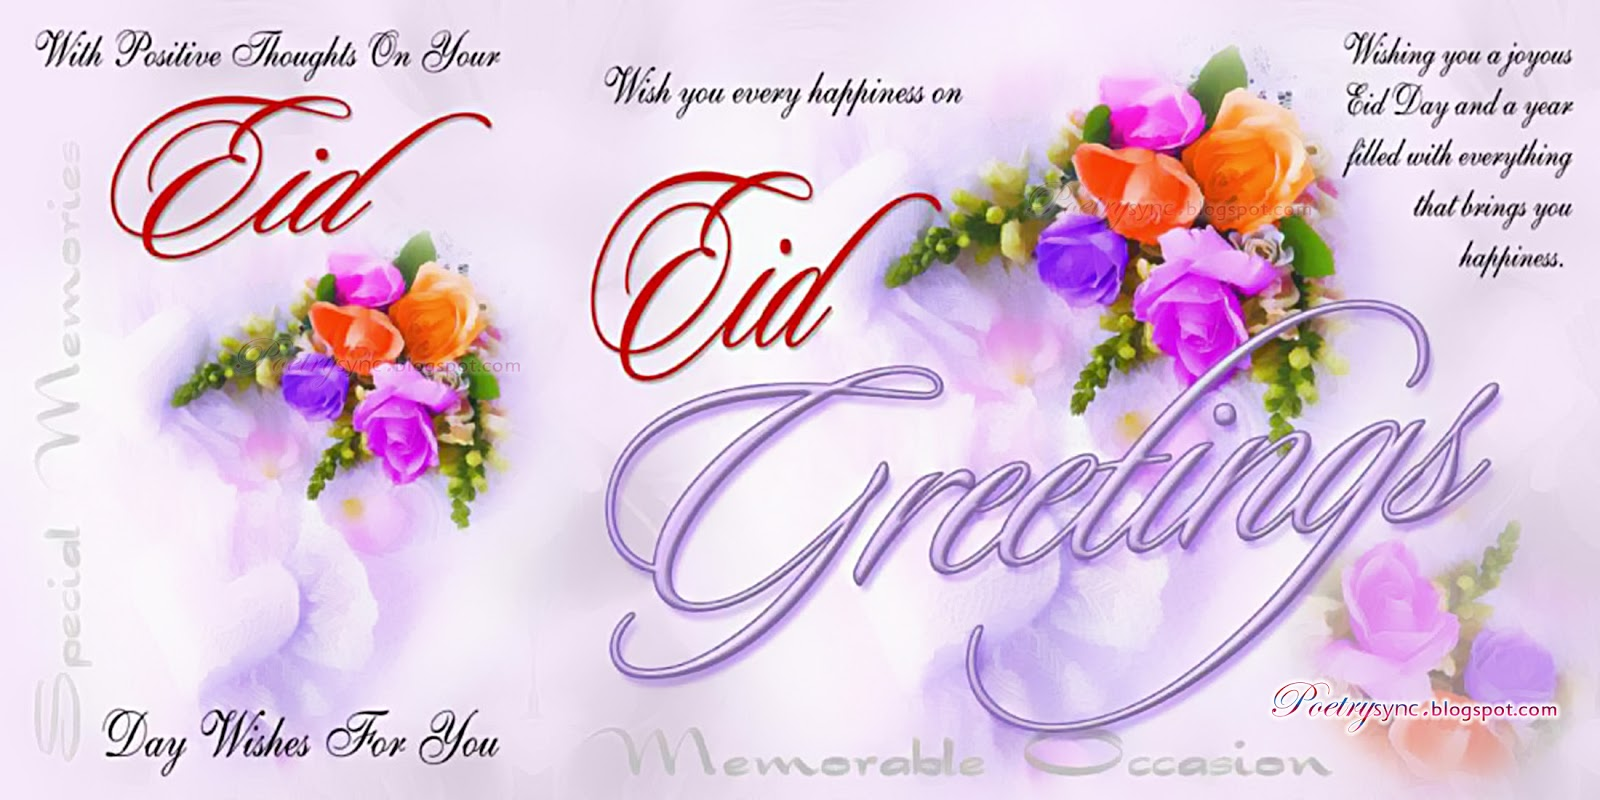 Eid al adha 2017 eid mubarak 2017 greetings images with best happy eid mubarak randam mubarak greetings images with best wishes kristyandbryce Choice Image